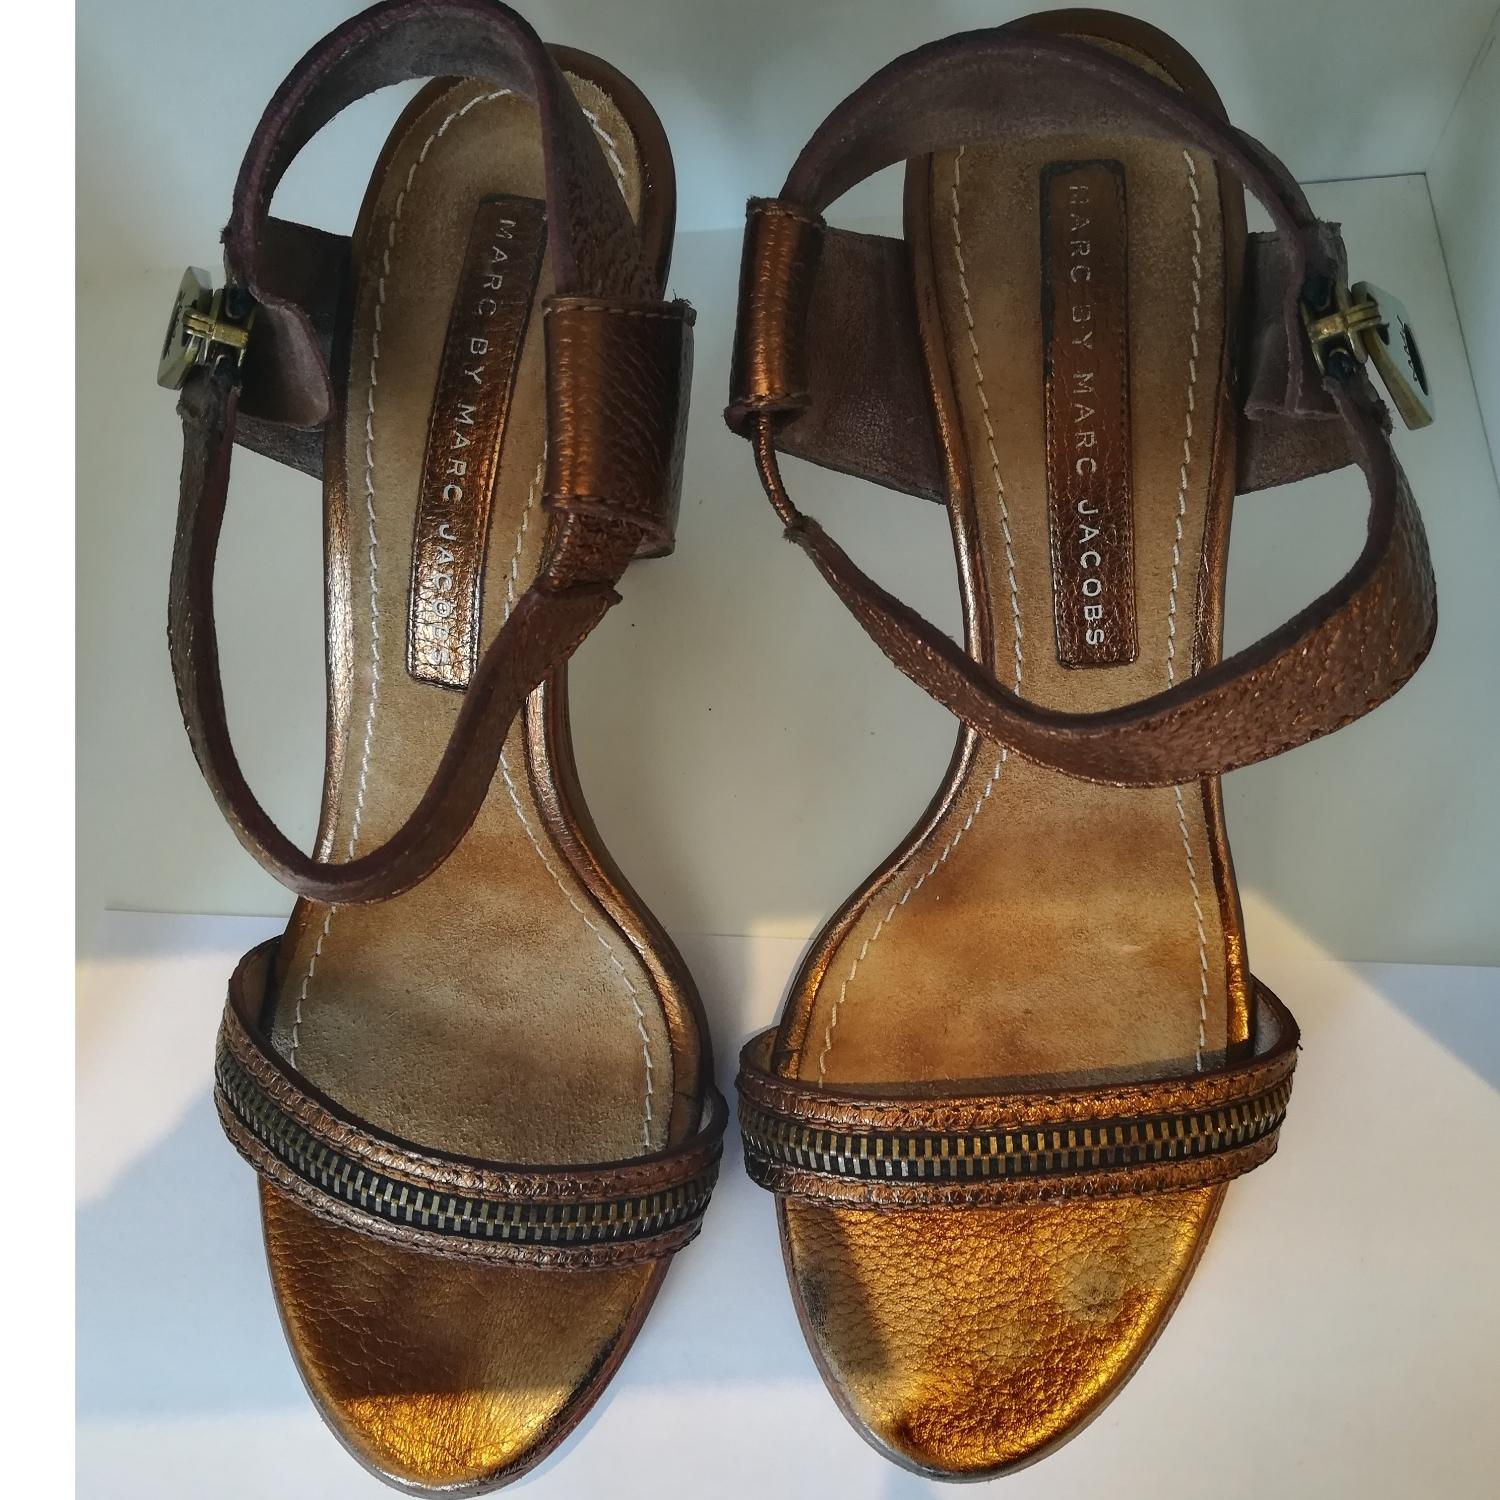 Marc Jacobs Bronze Metallic Strappy Formal Shoes Size EU 38.5 (Approx. US 8.5) Regular (M, B)